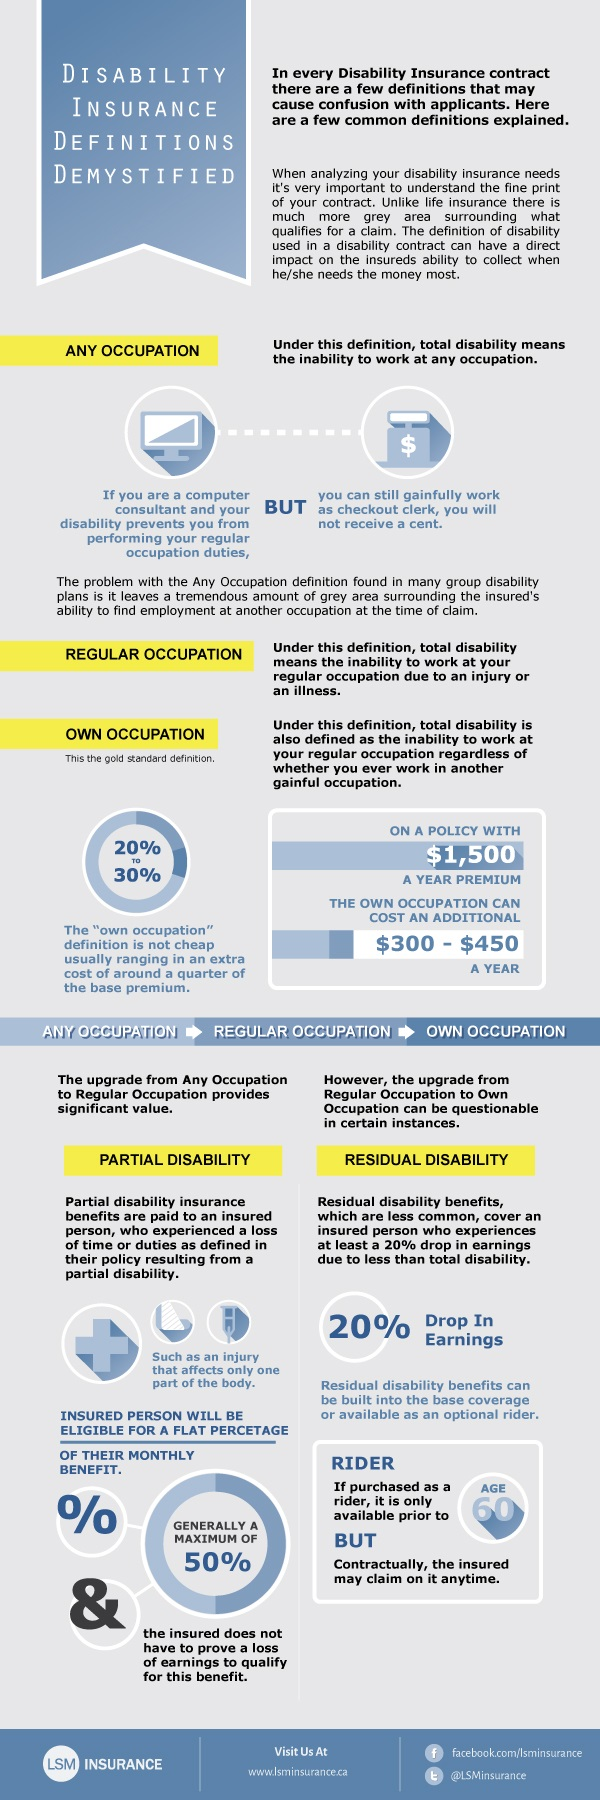 Disability Insurance Definition Demystified